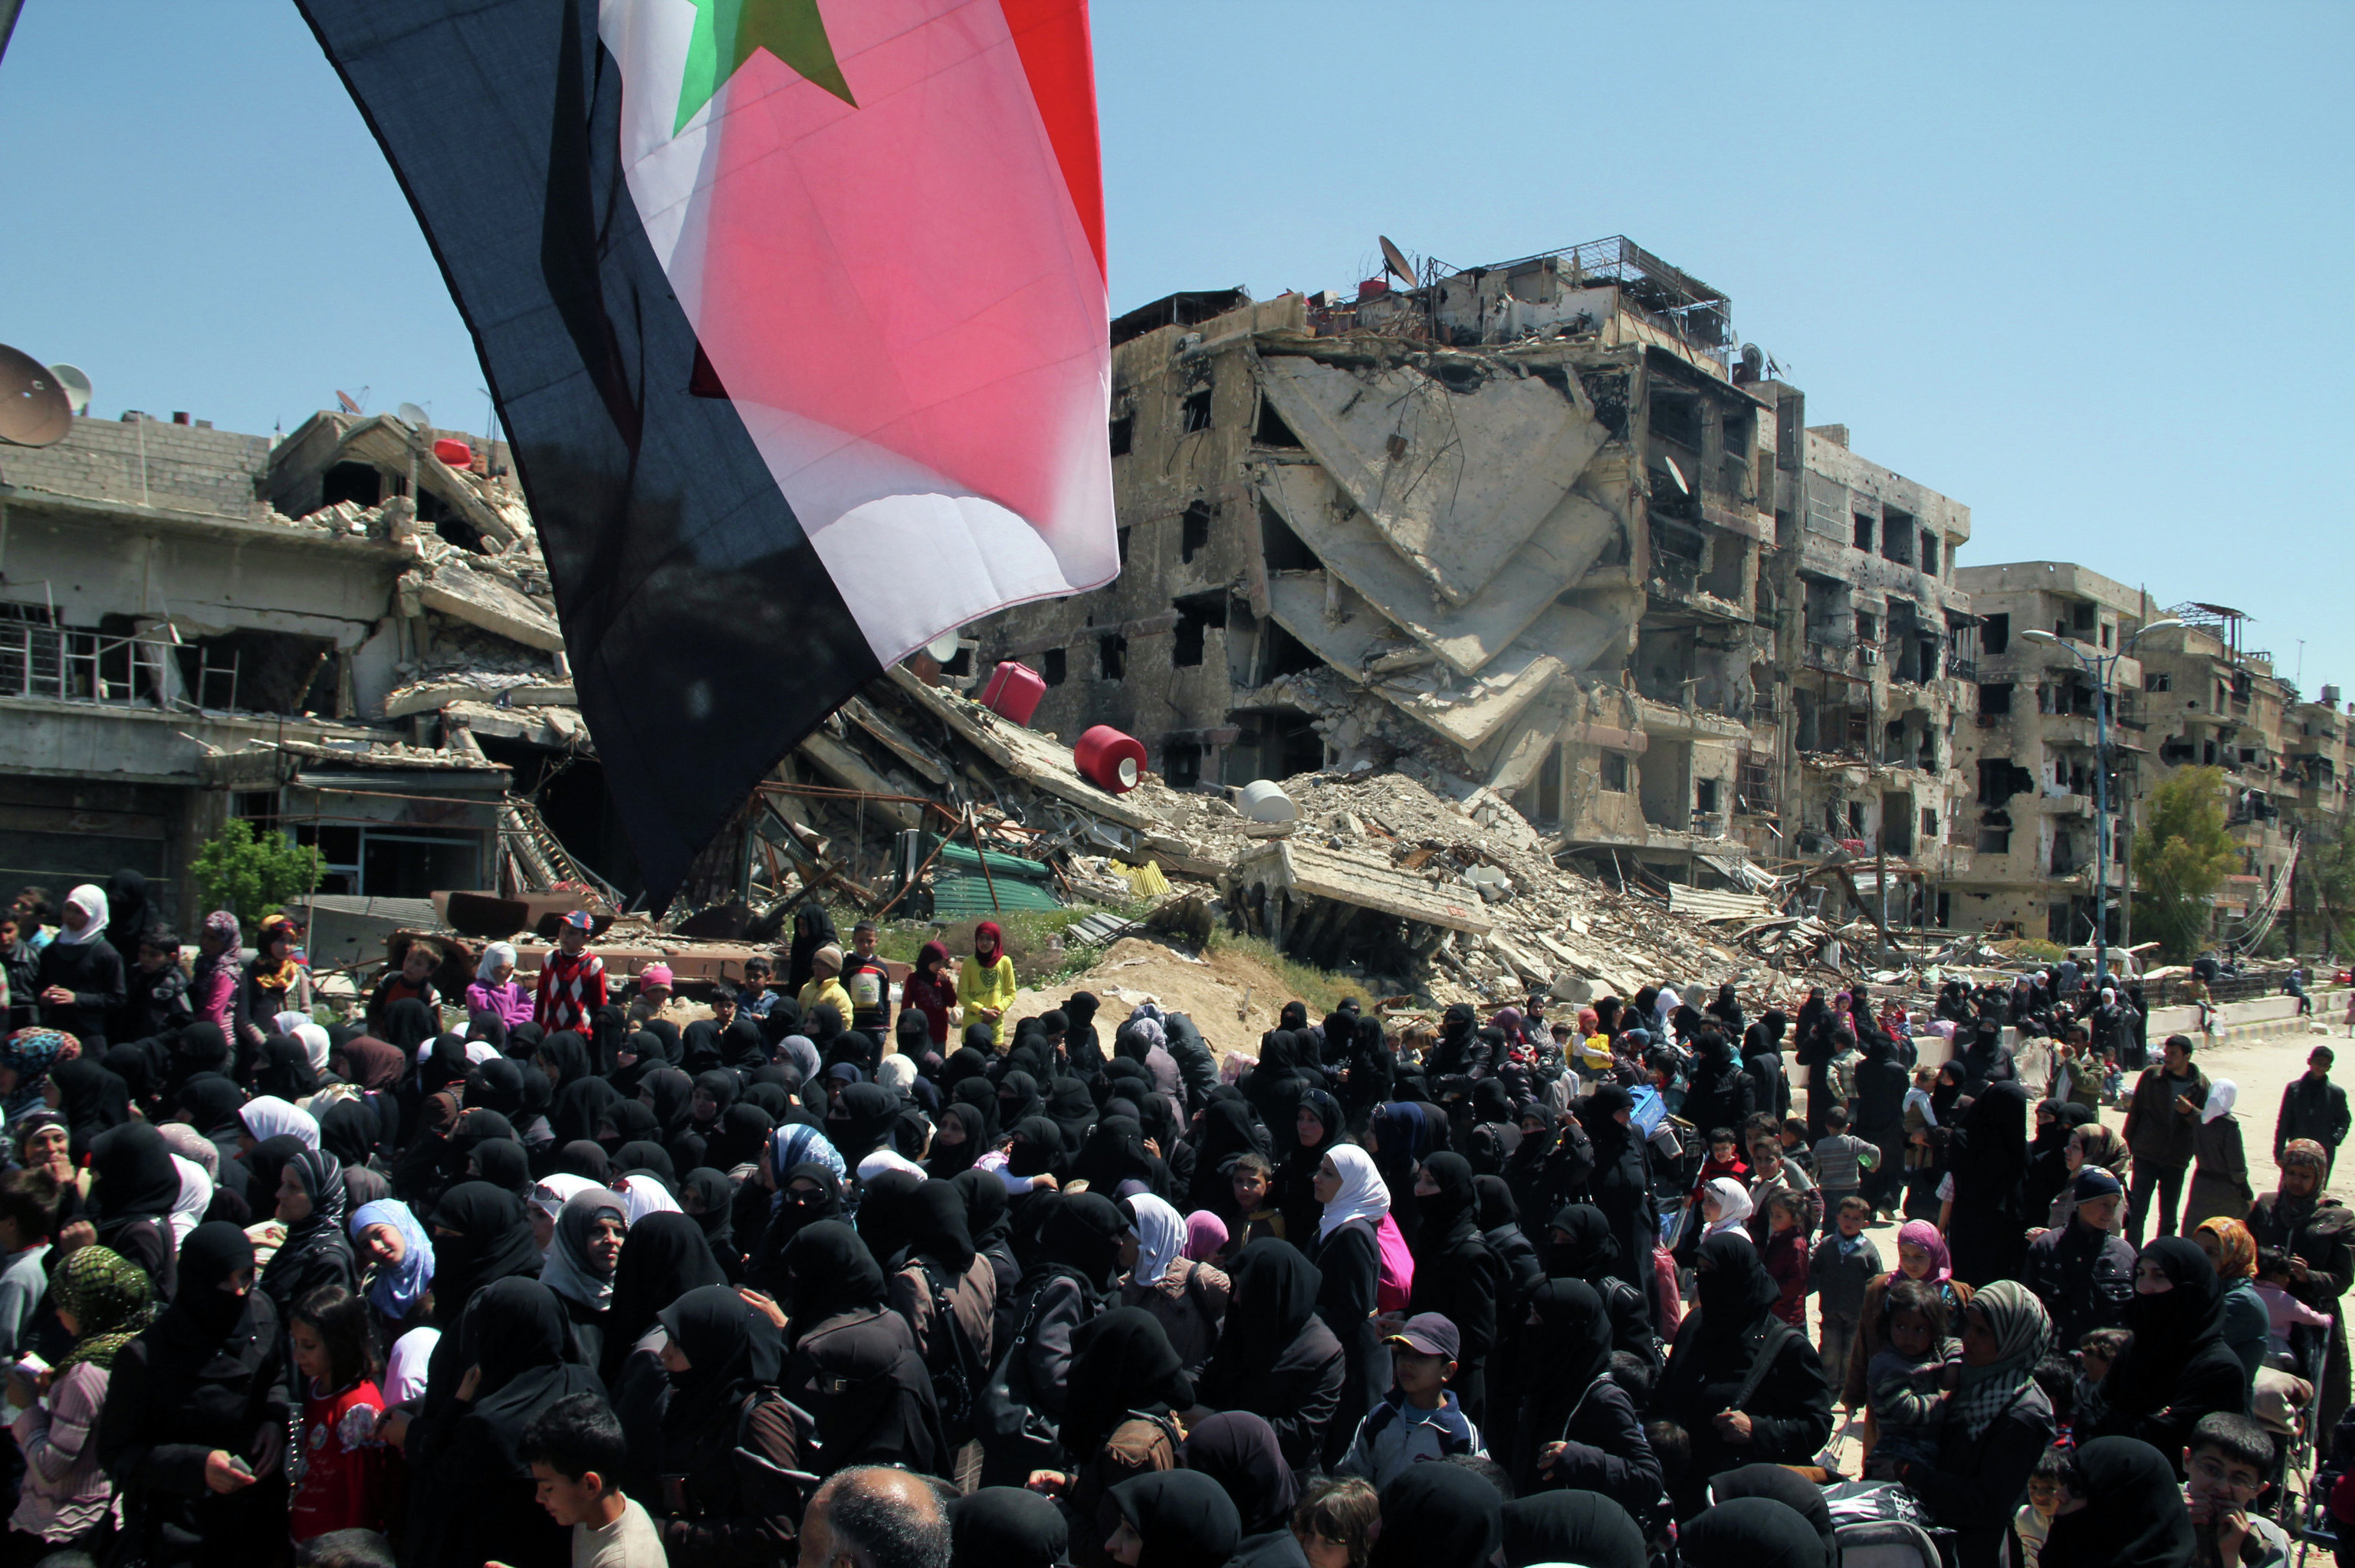 Residents flee the Palestinian refugee camp Yarmouk on the outskirts of Damascus. Clashes between Free Syrian Army fighters and ISIS militants have been going on in the district. Yarmouk residents wait in line to enter the territory controlled by the Syrian government